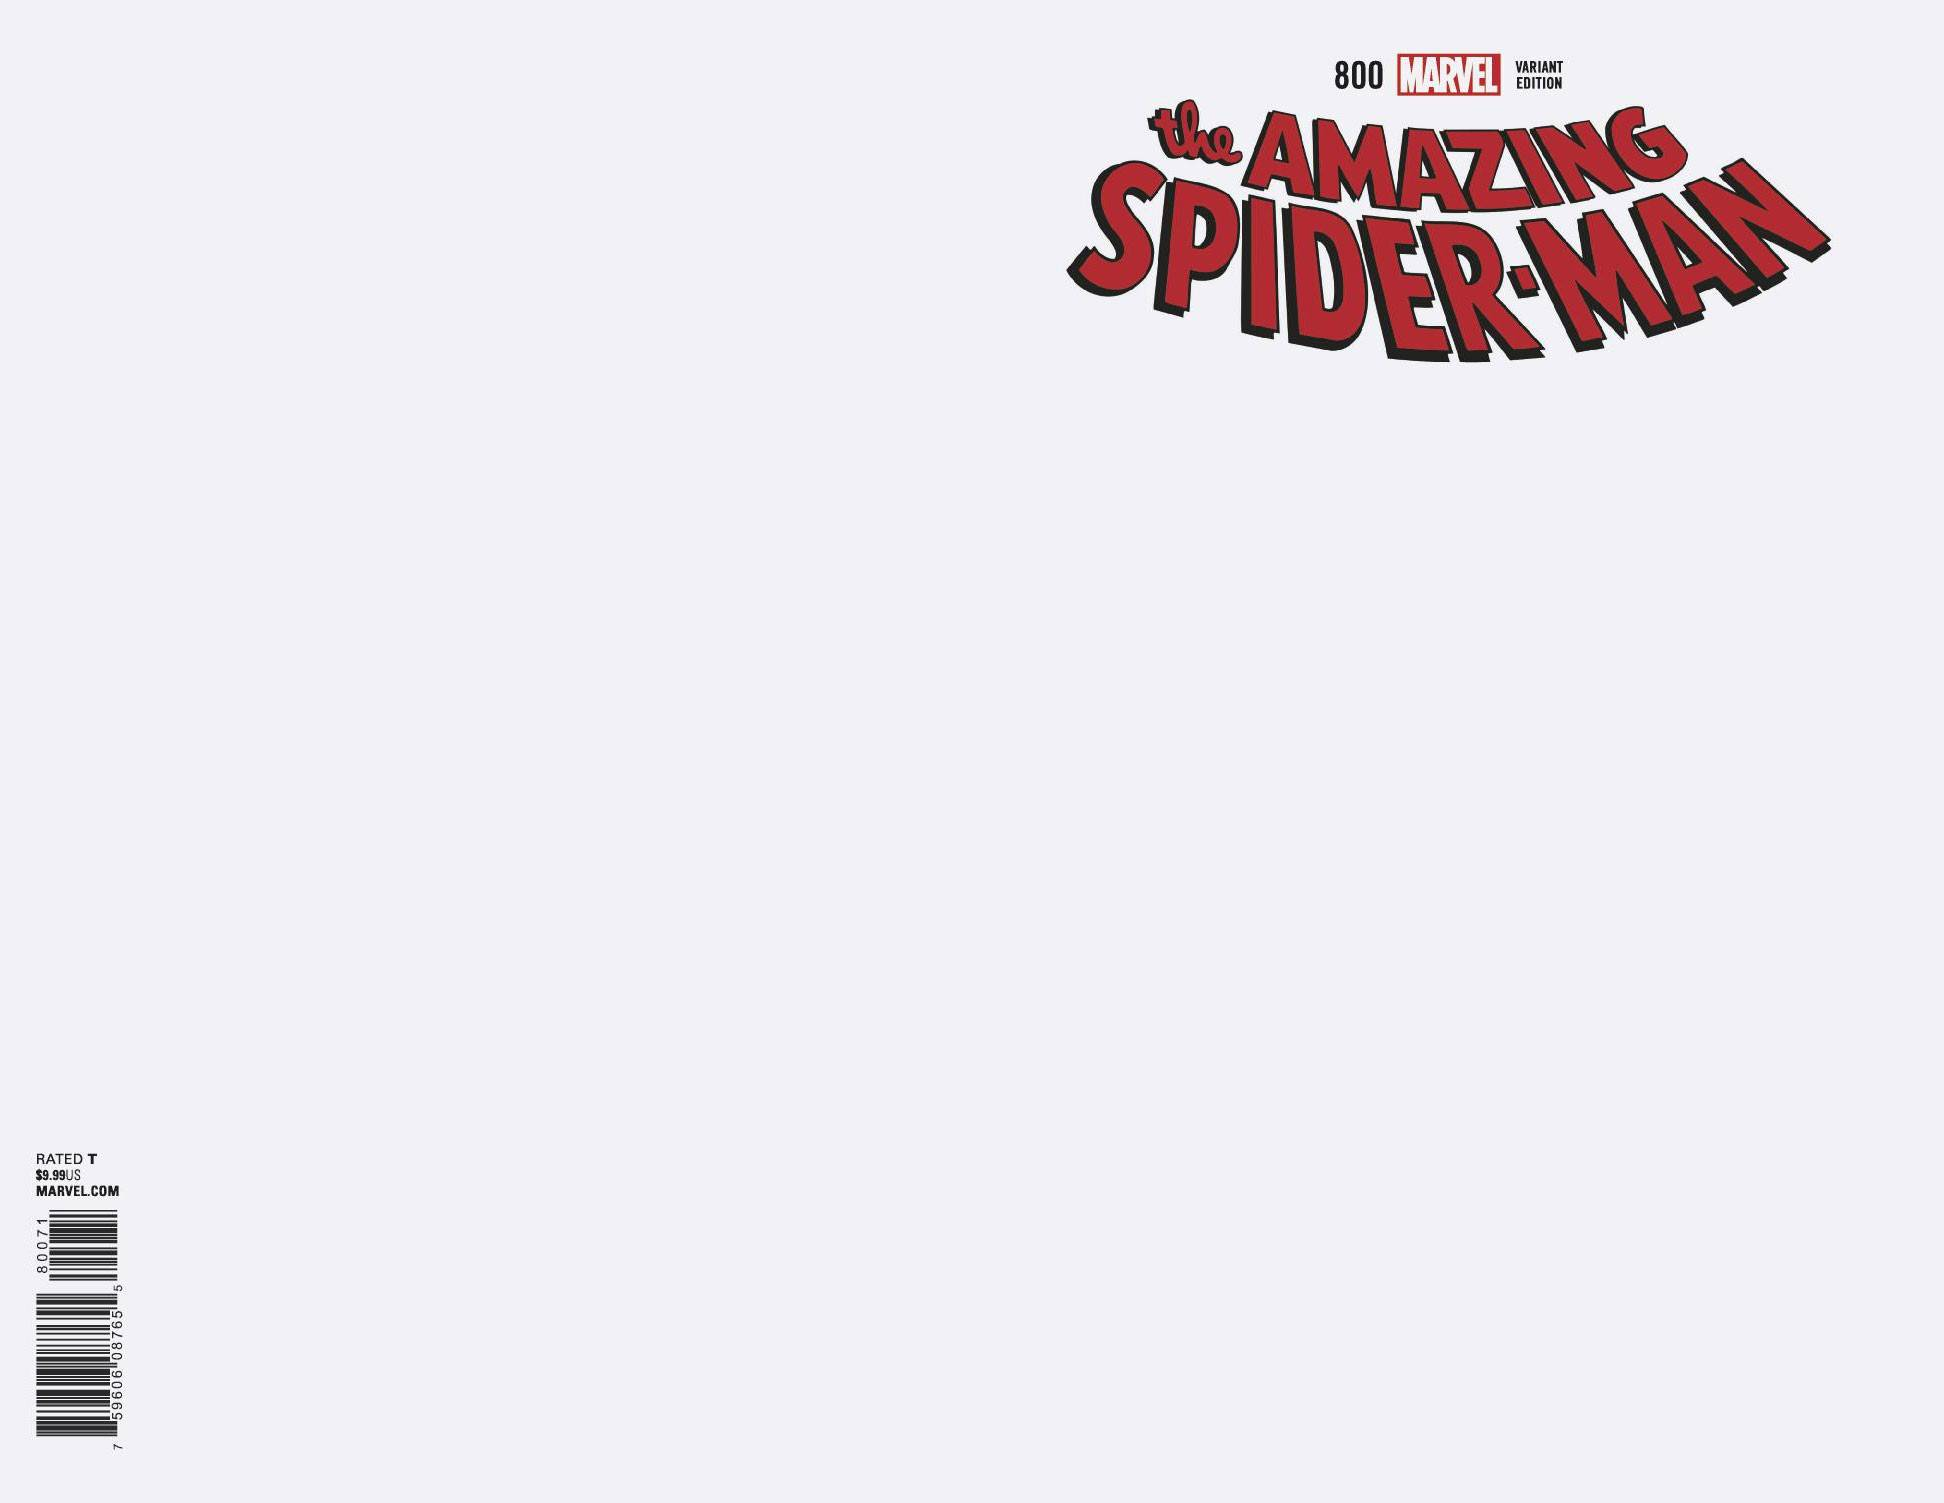 Amazing Spider-Man (Vol. 5)  #800 Blank RI Variant